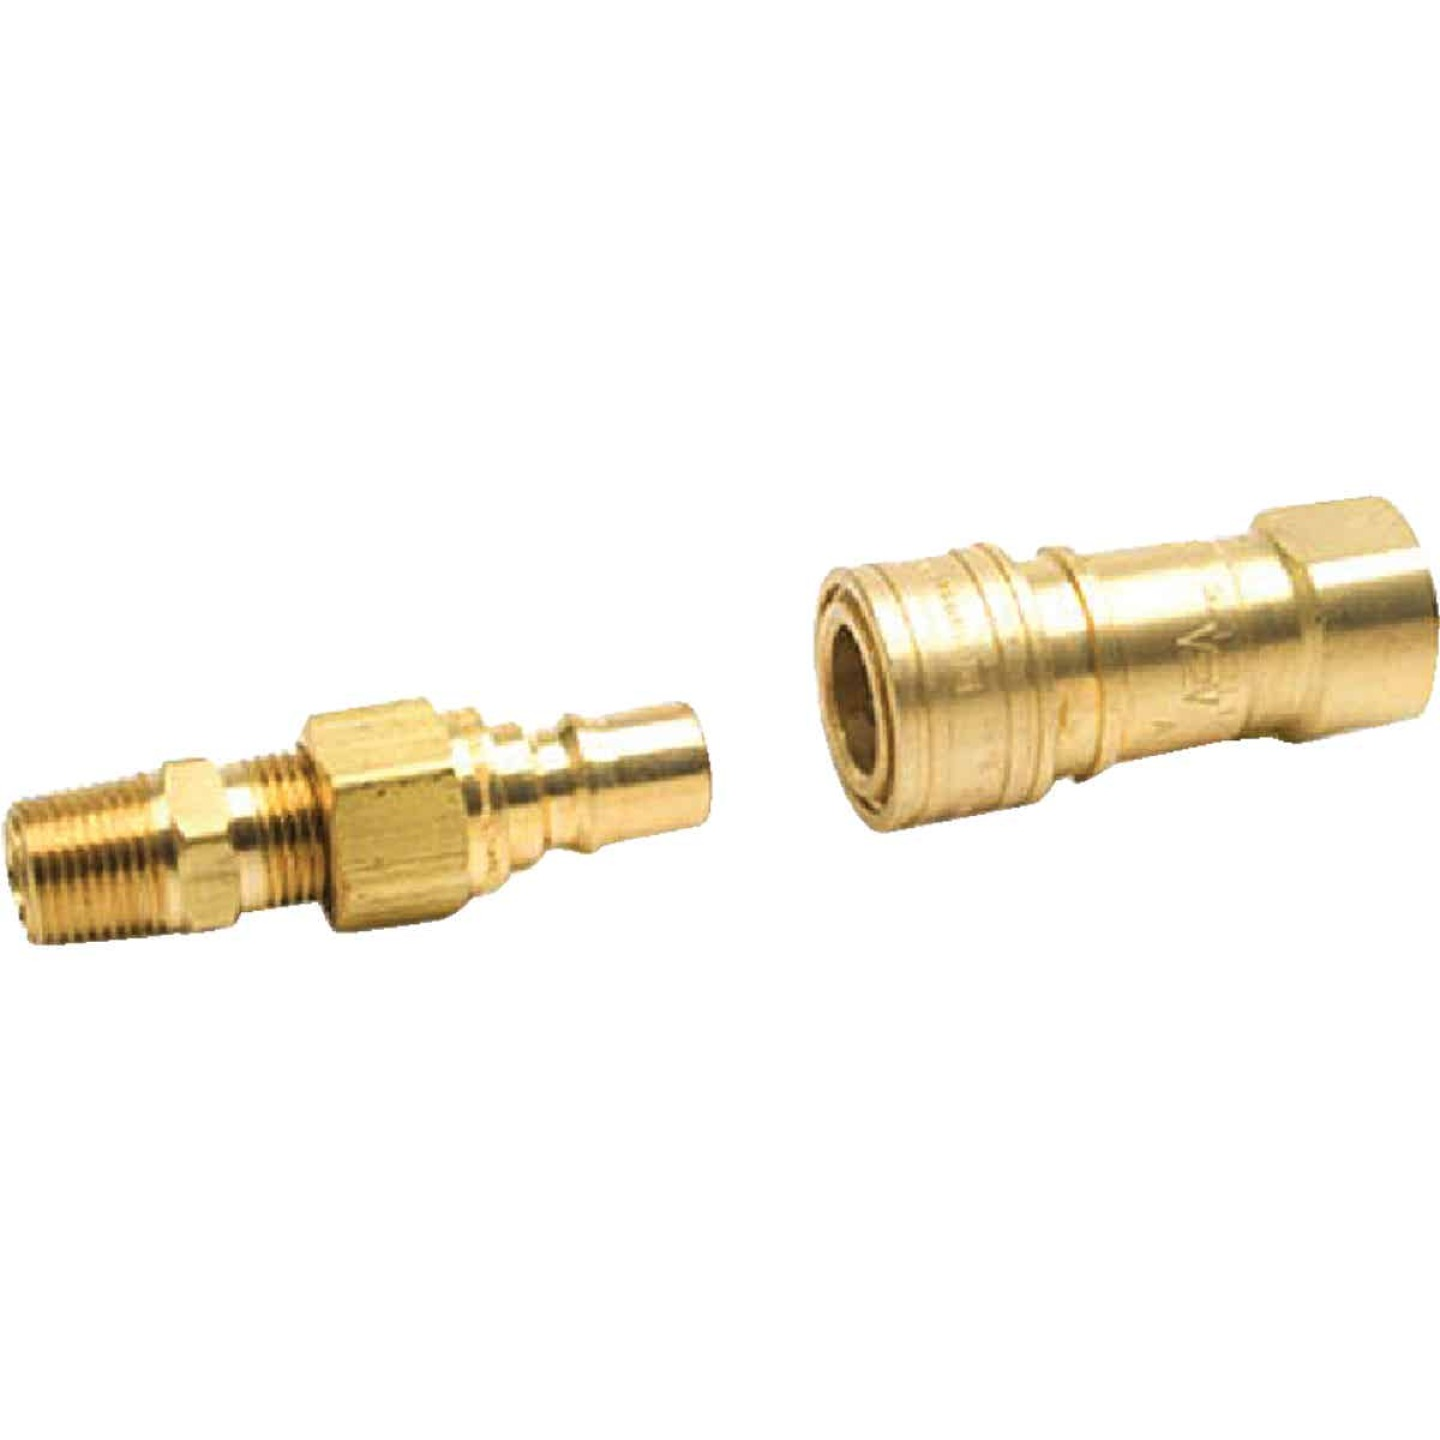 MR. HEATER 3/8 In. Brass Gas Connector Image 1